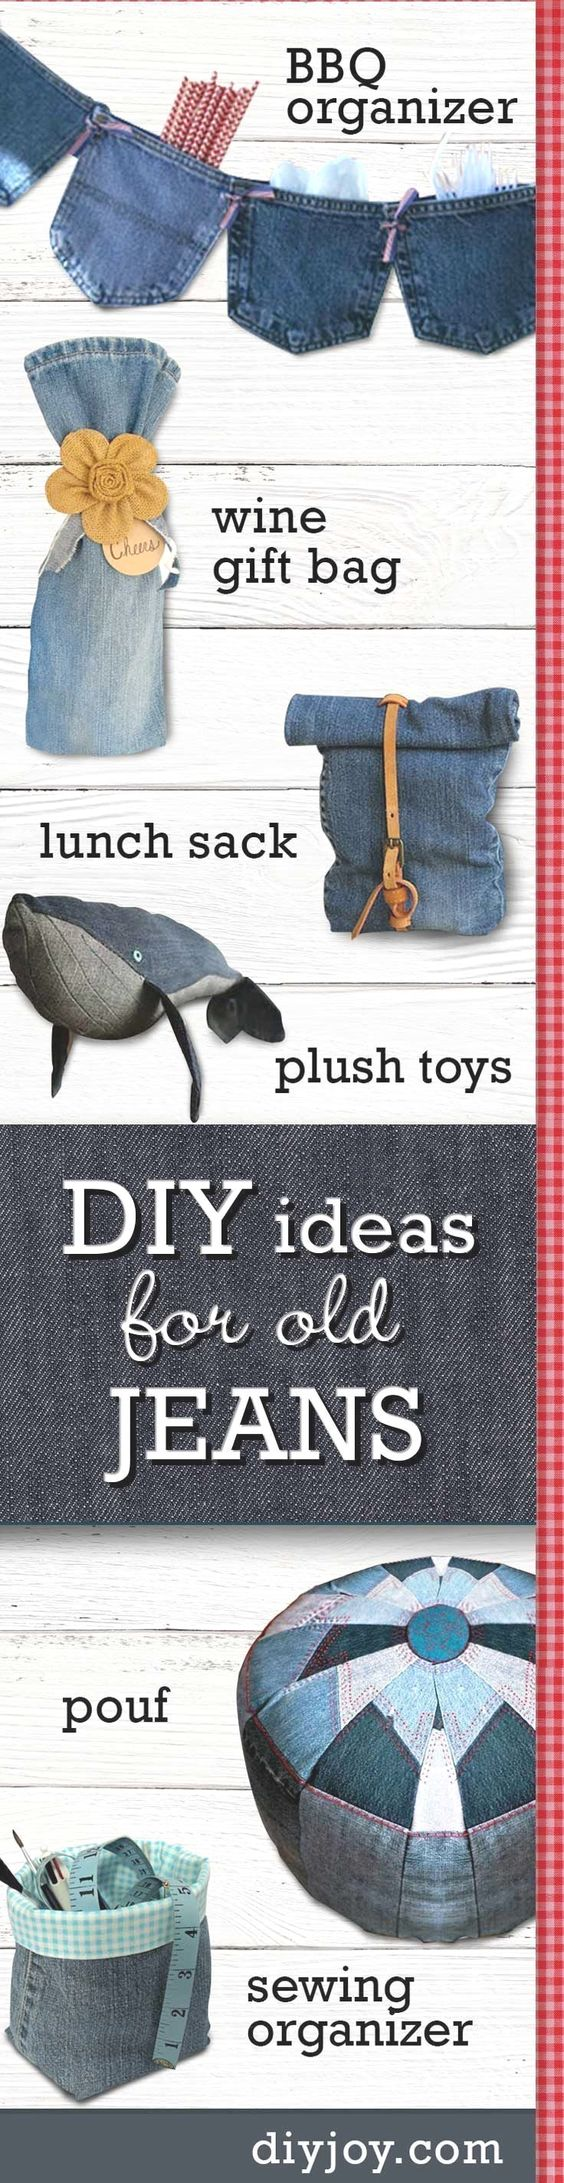 Denim Crafts for Olds Jeans - DIY Ideas With Denim - Sewing Projects and No sew Ideas